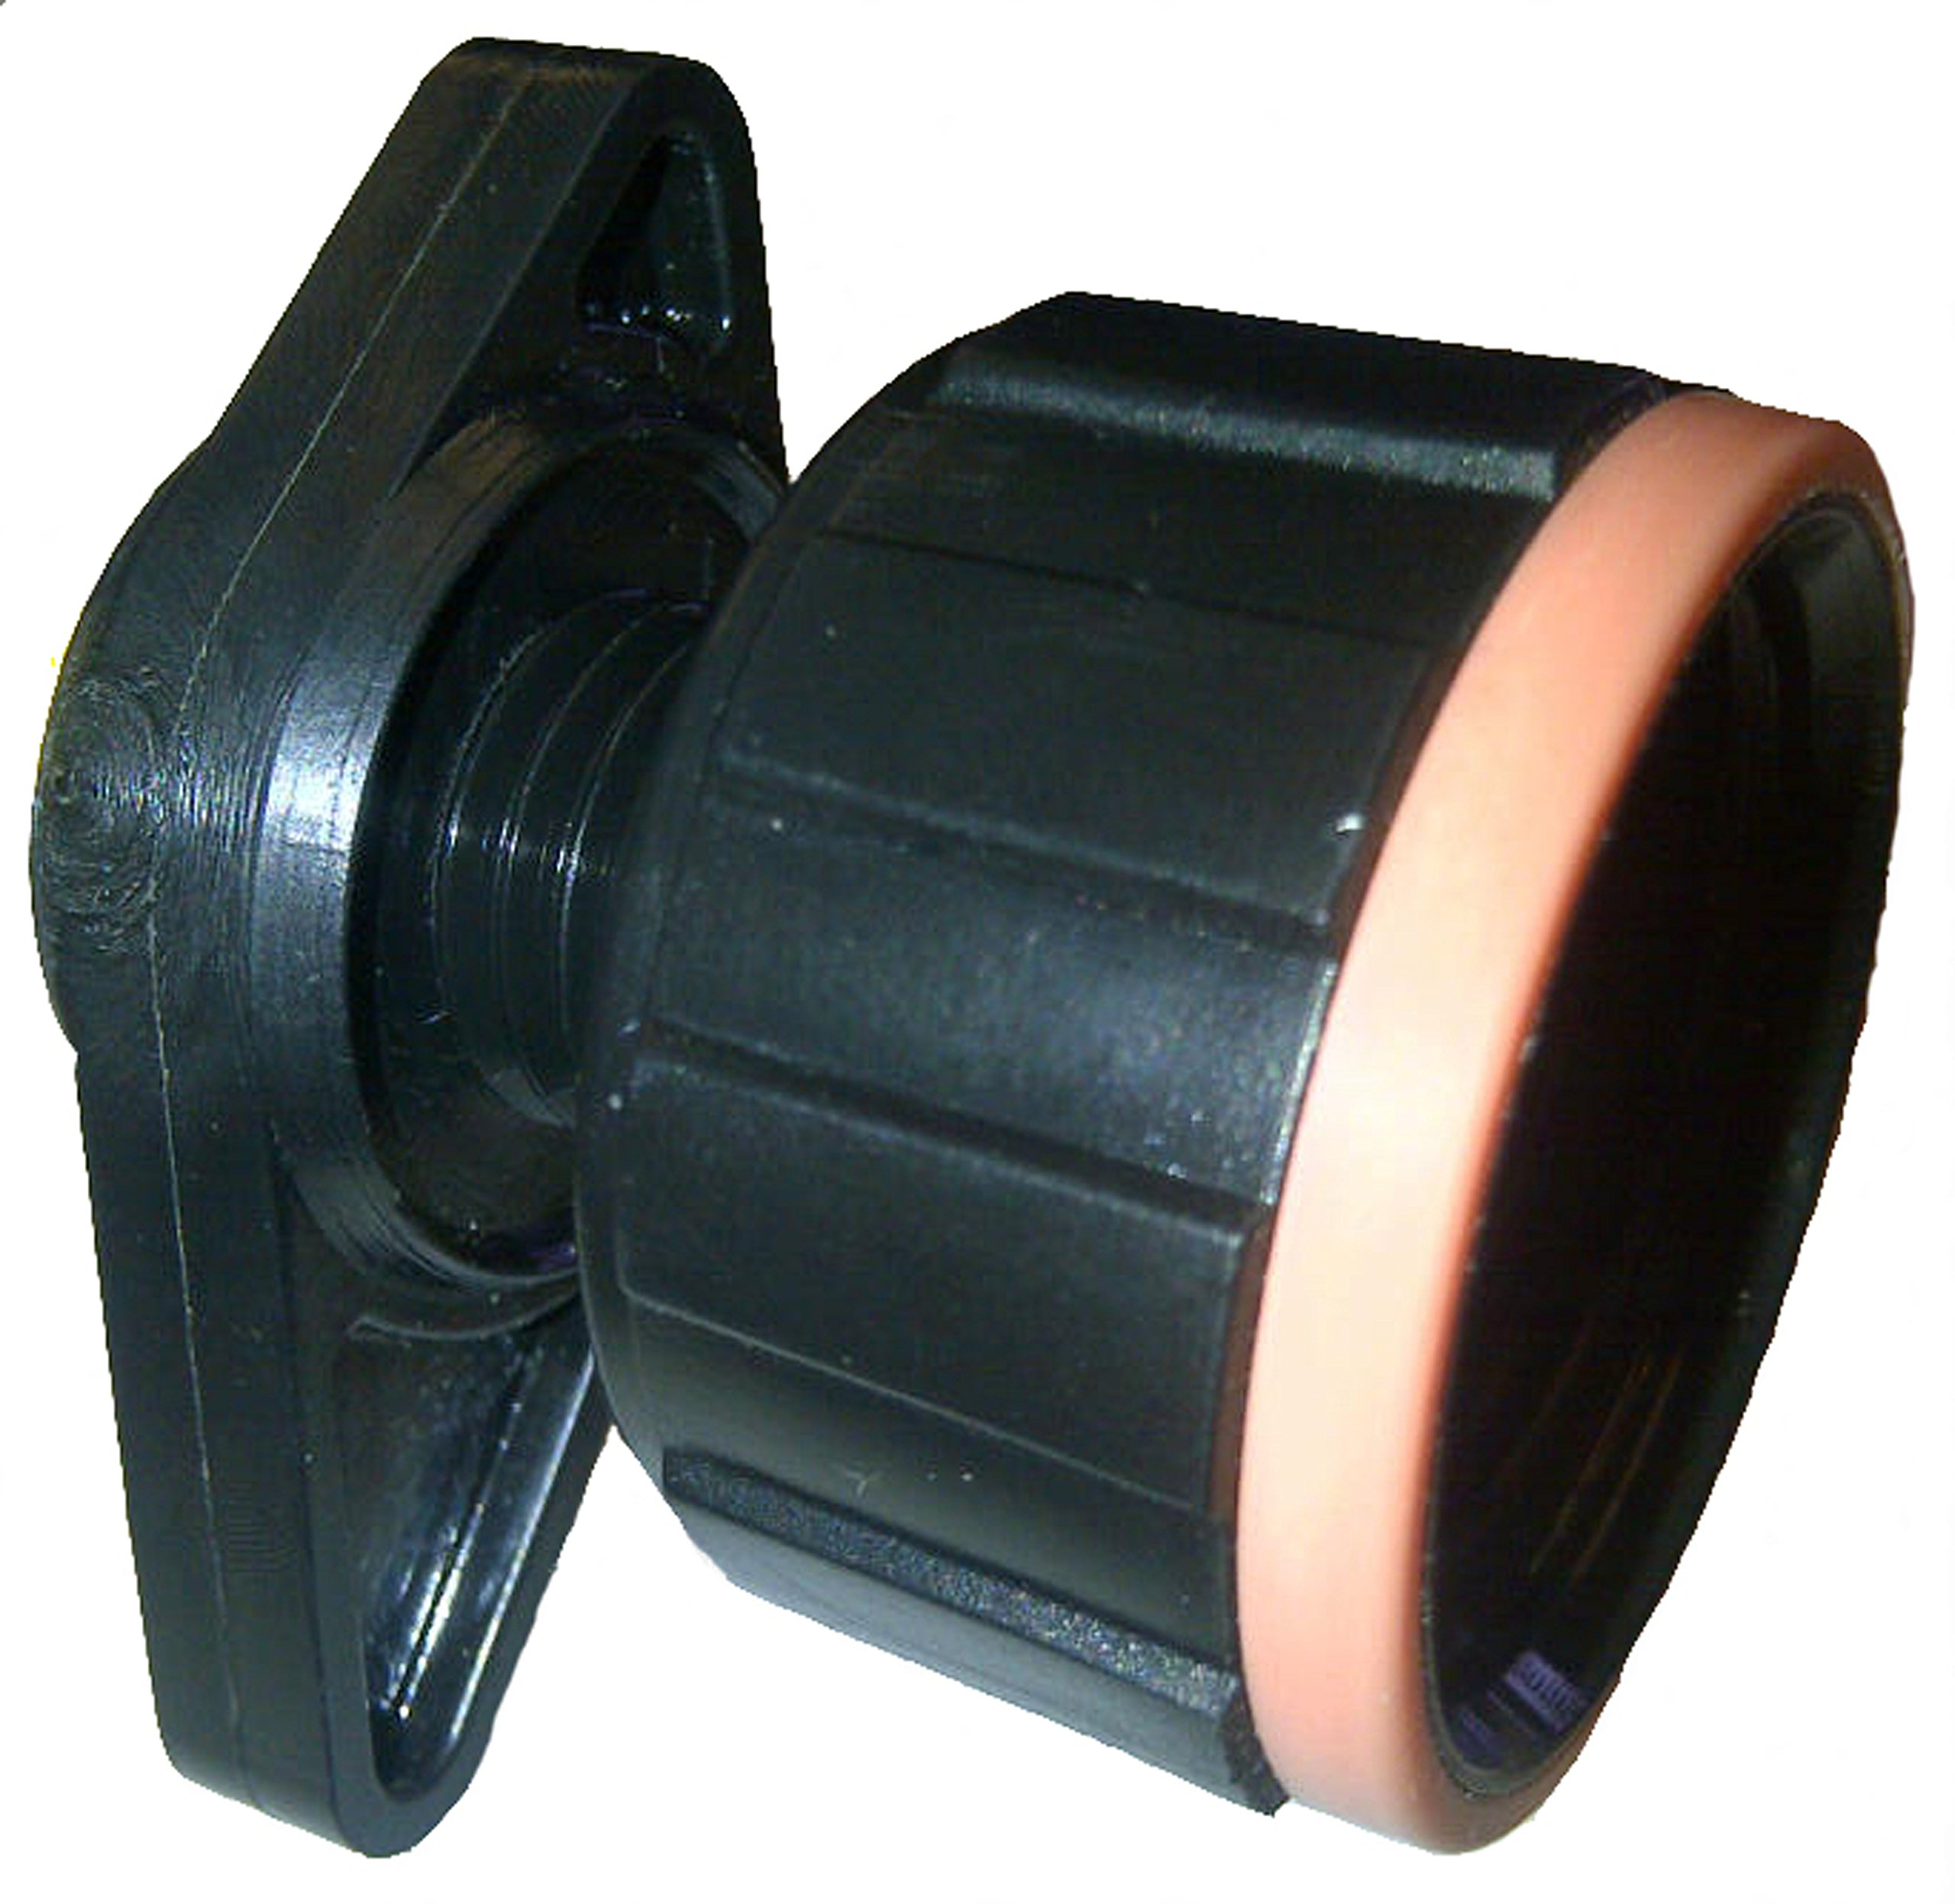 Peach Teats Easy Fit Threaded Adapter, Black